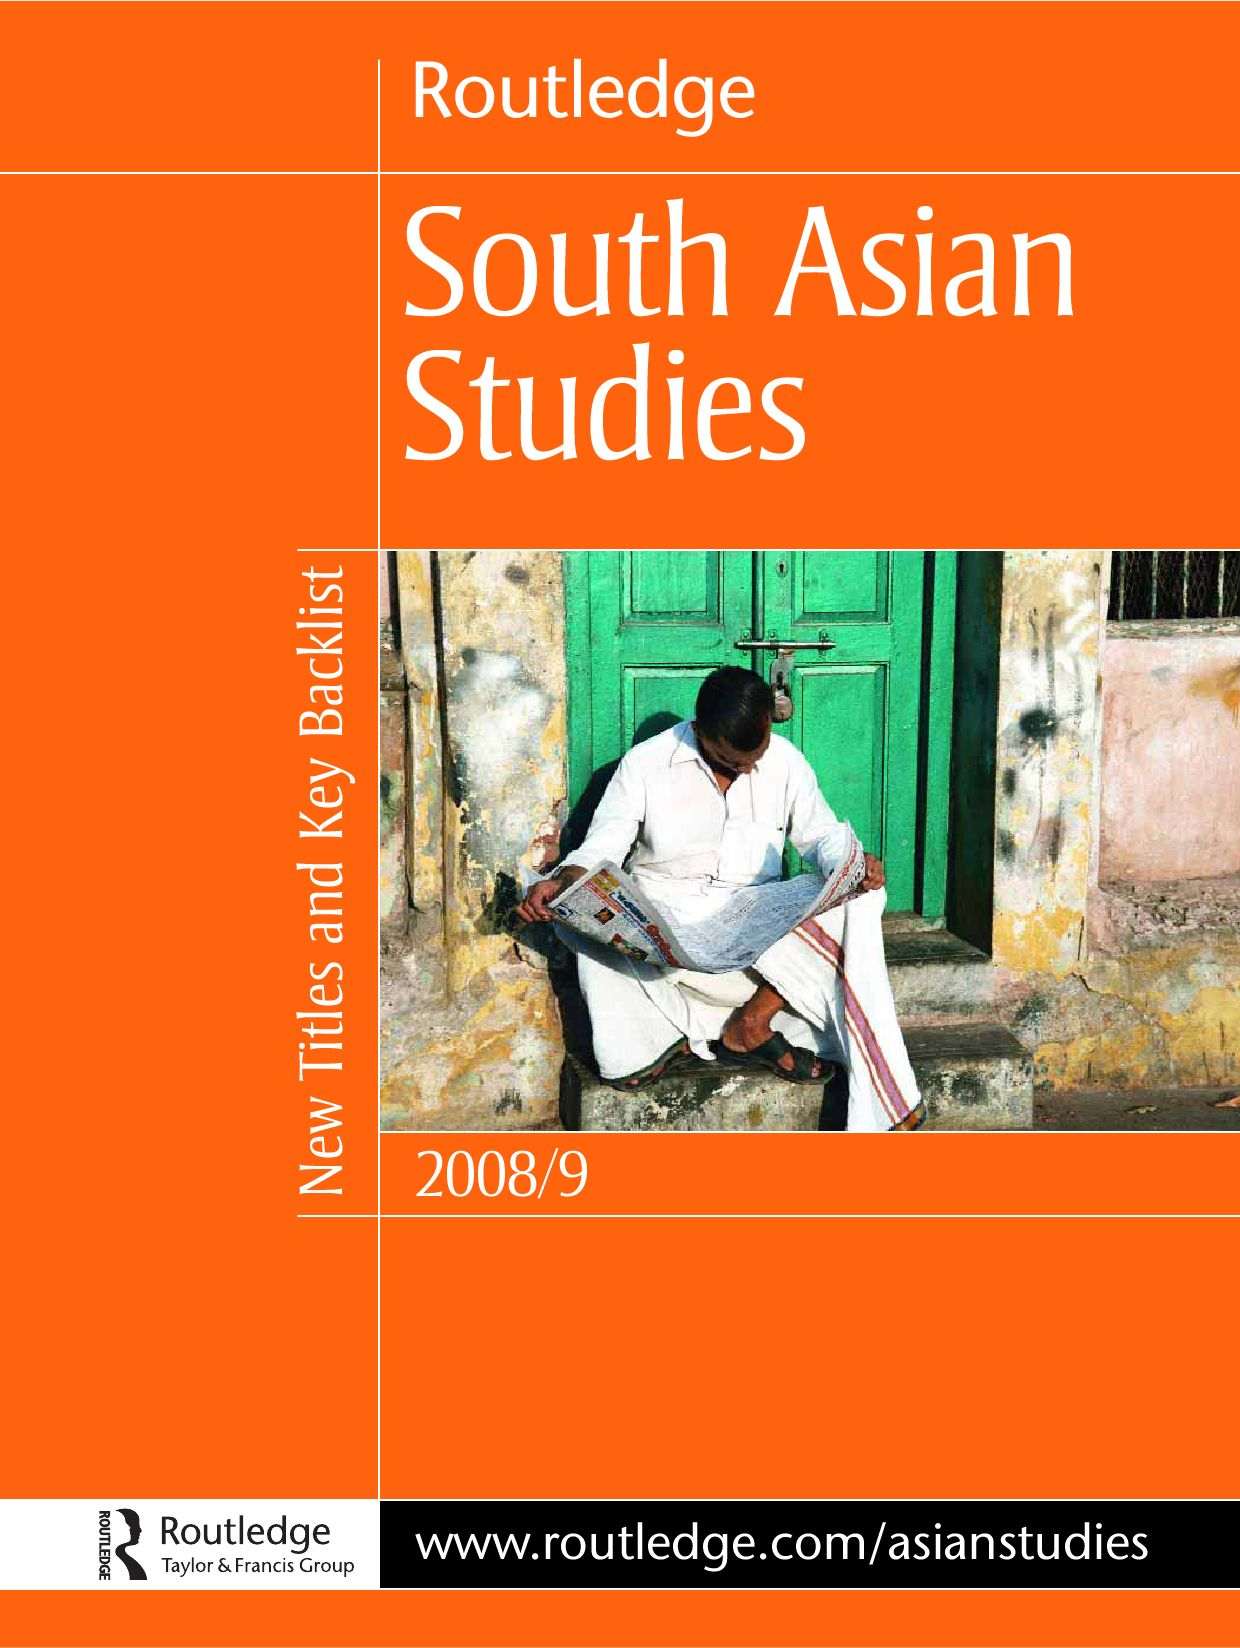 South Asian Studies 2008-2009 (UK) by Routledge Taylor & Francis Group -  issuu